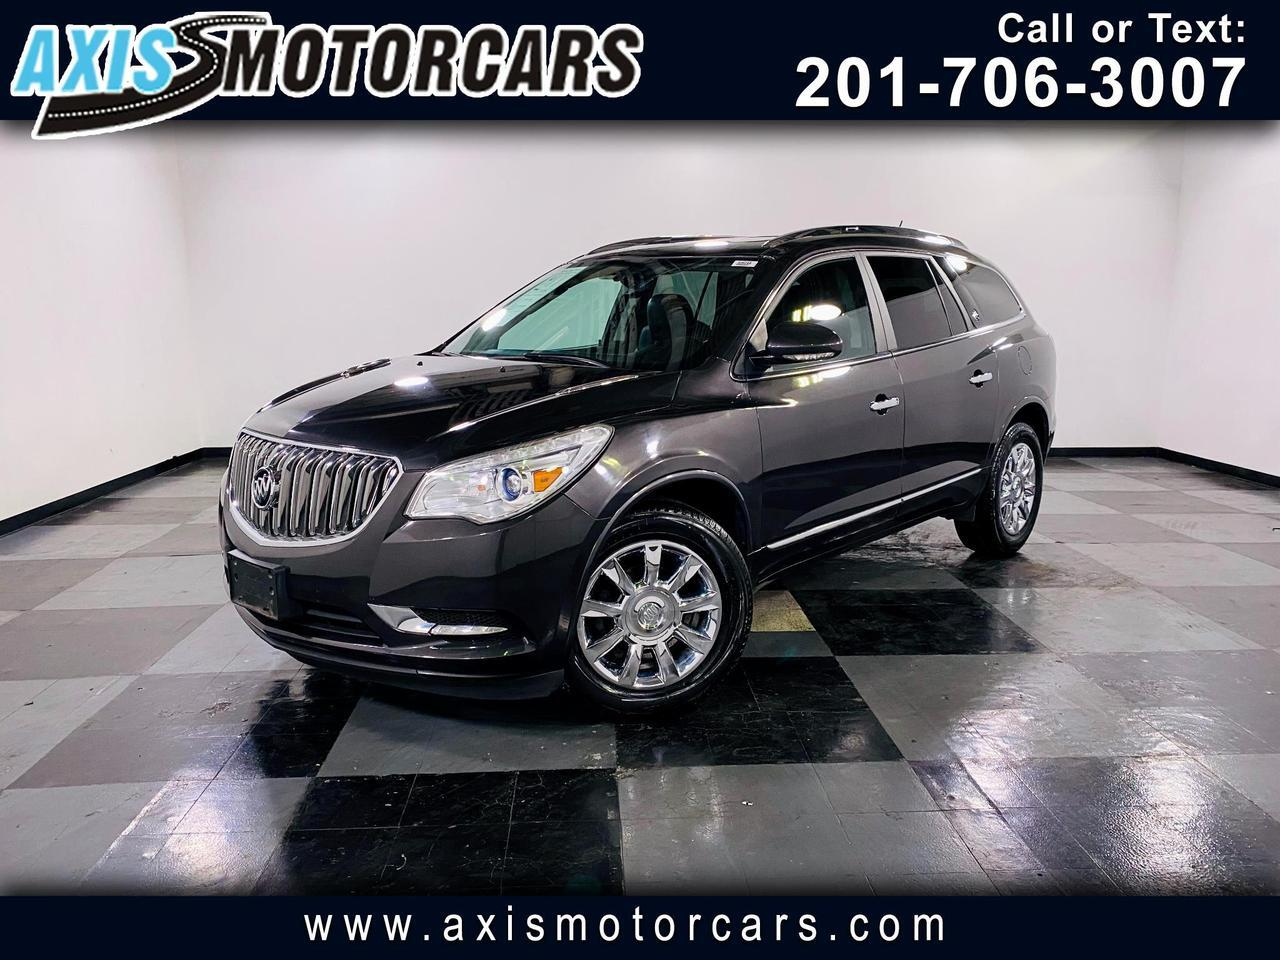 2015 Buick Enclave AWD 4dr w/Backup Camera Navigation 3 Seat Row Pano Jersey City NJ